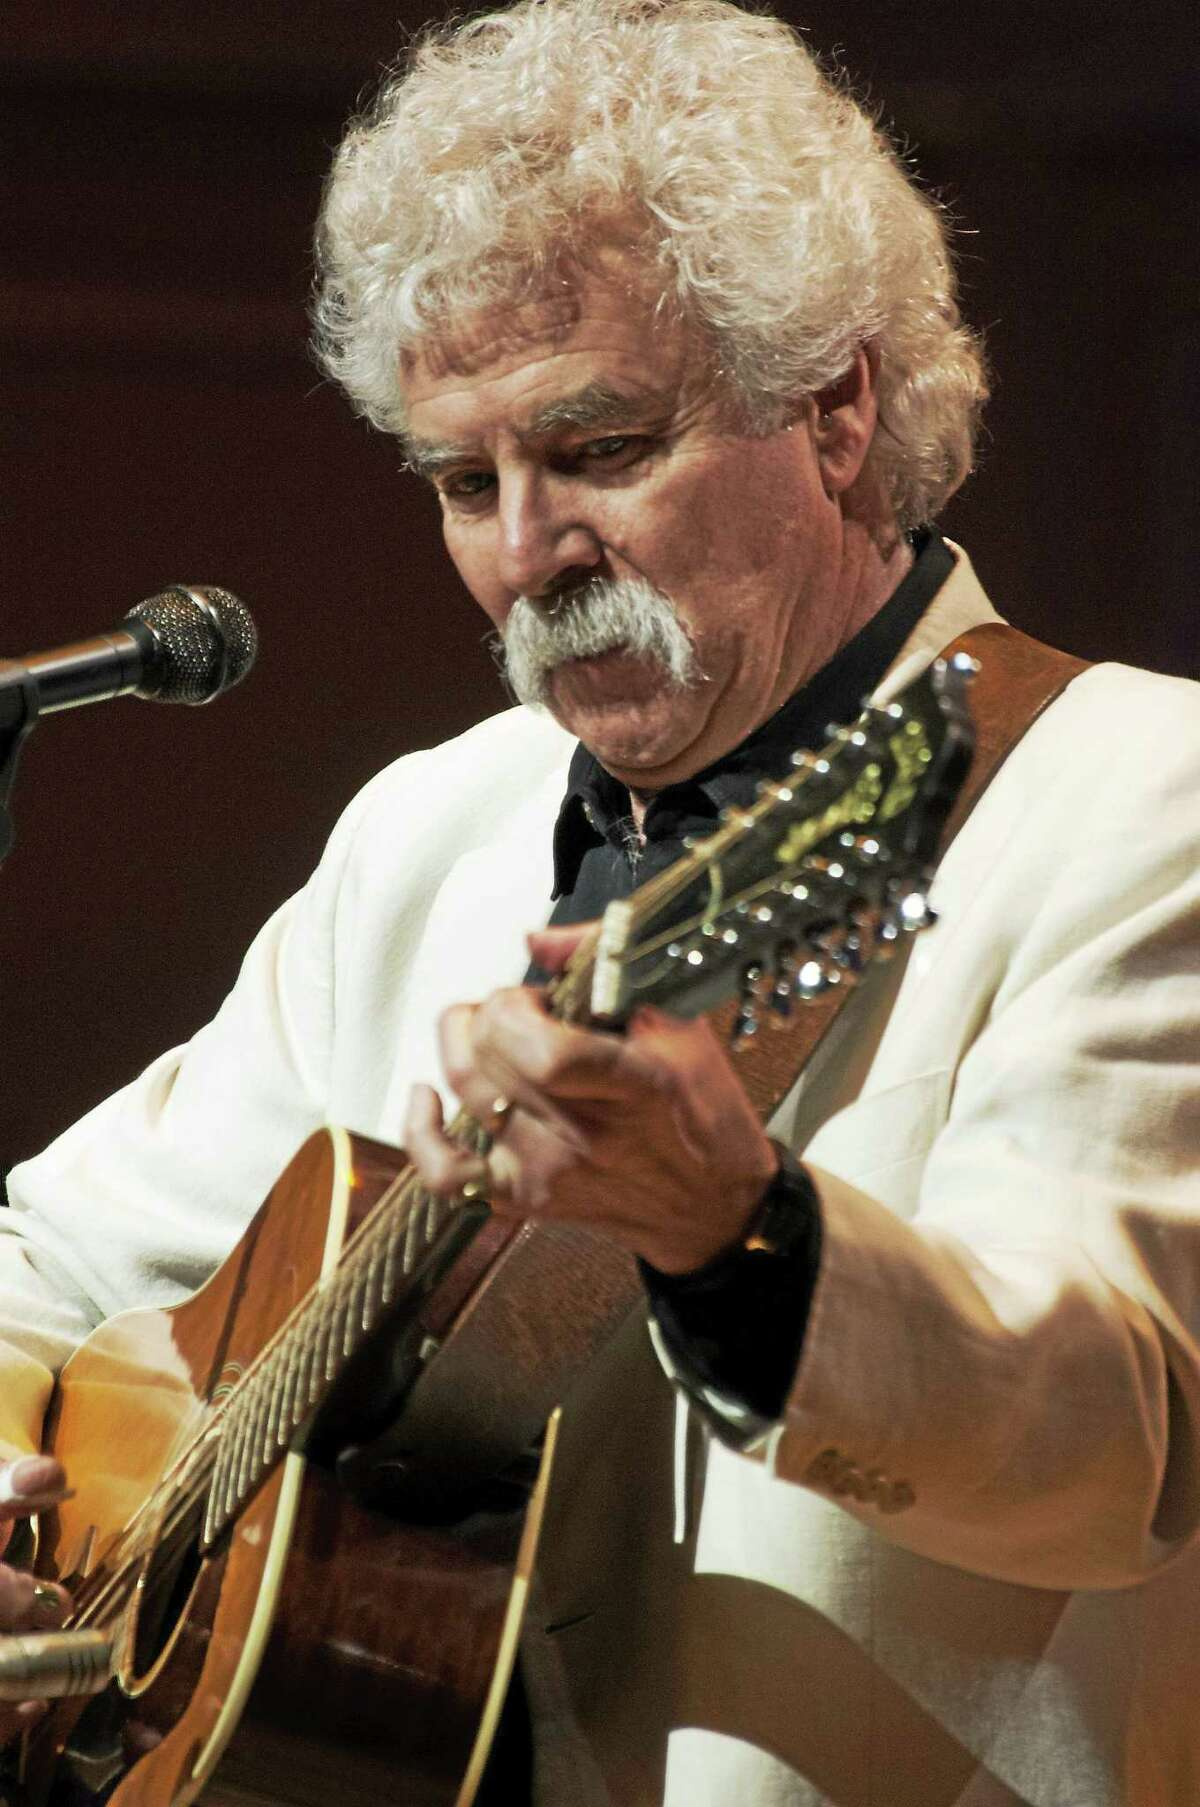 Photo by Bill Campbell Tom Rush is performing at Infinity Music Hall in Hartford June 28.